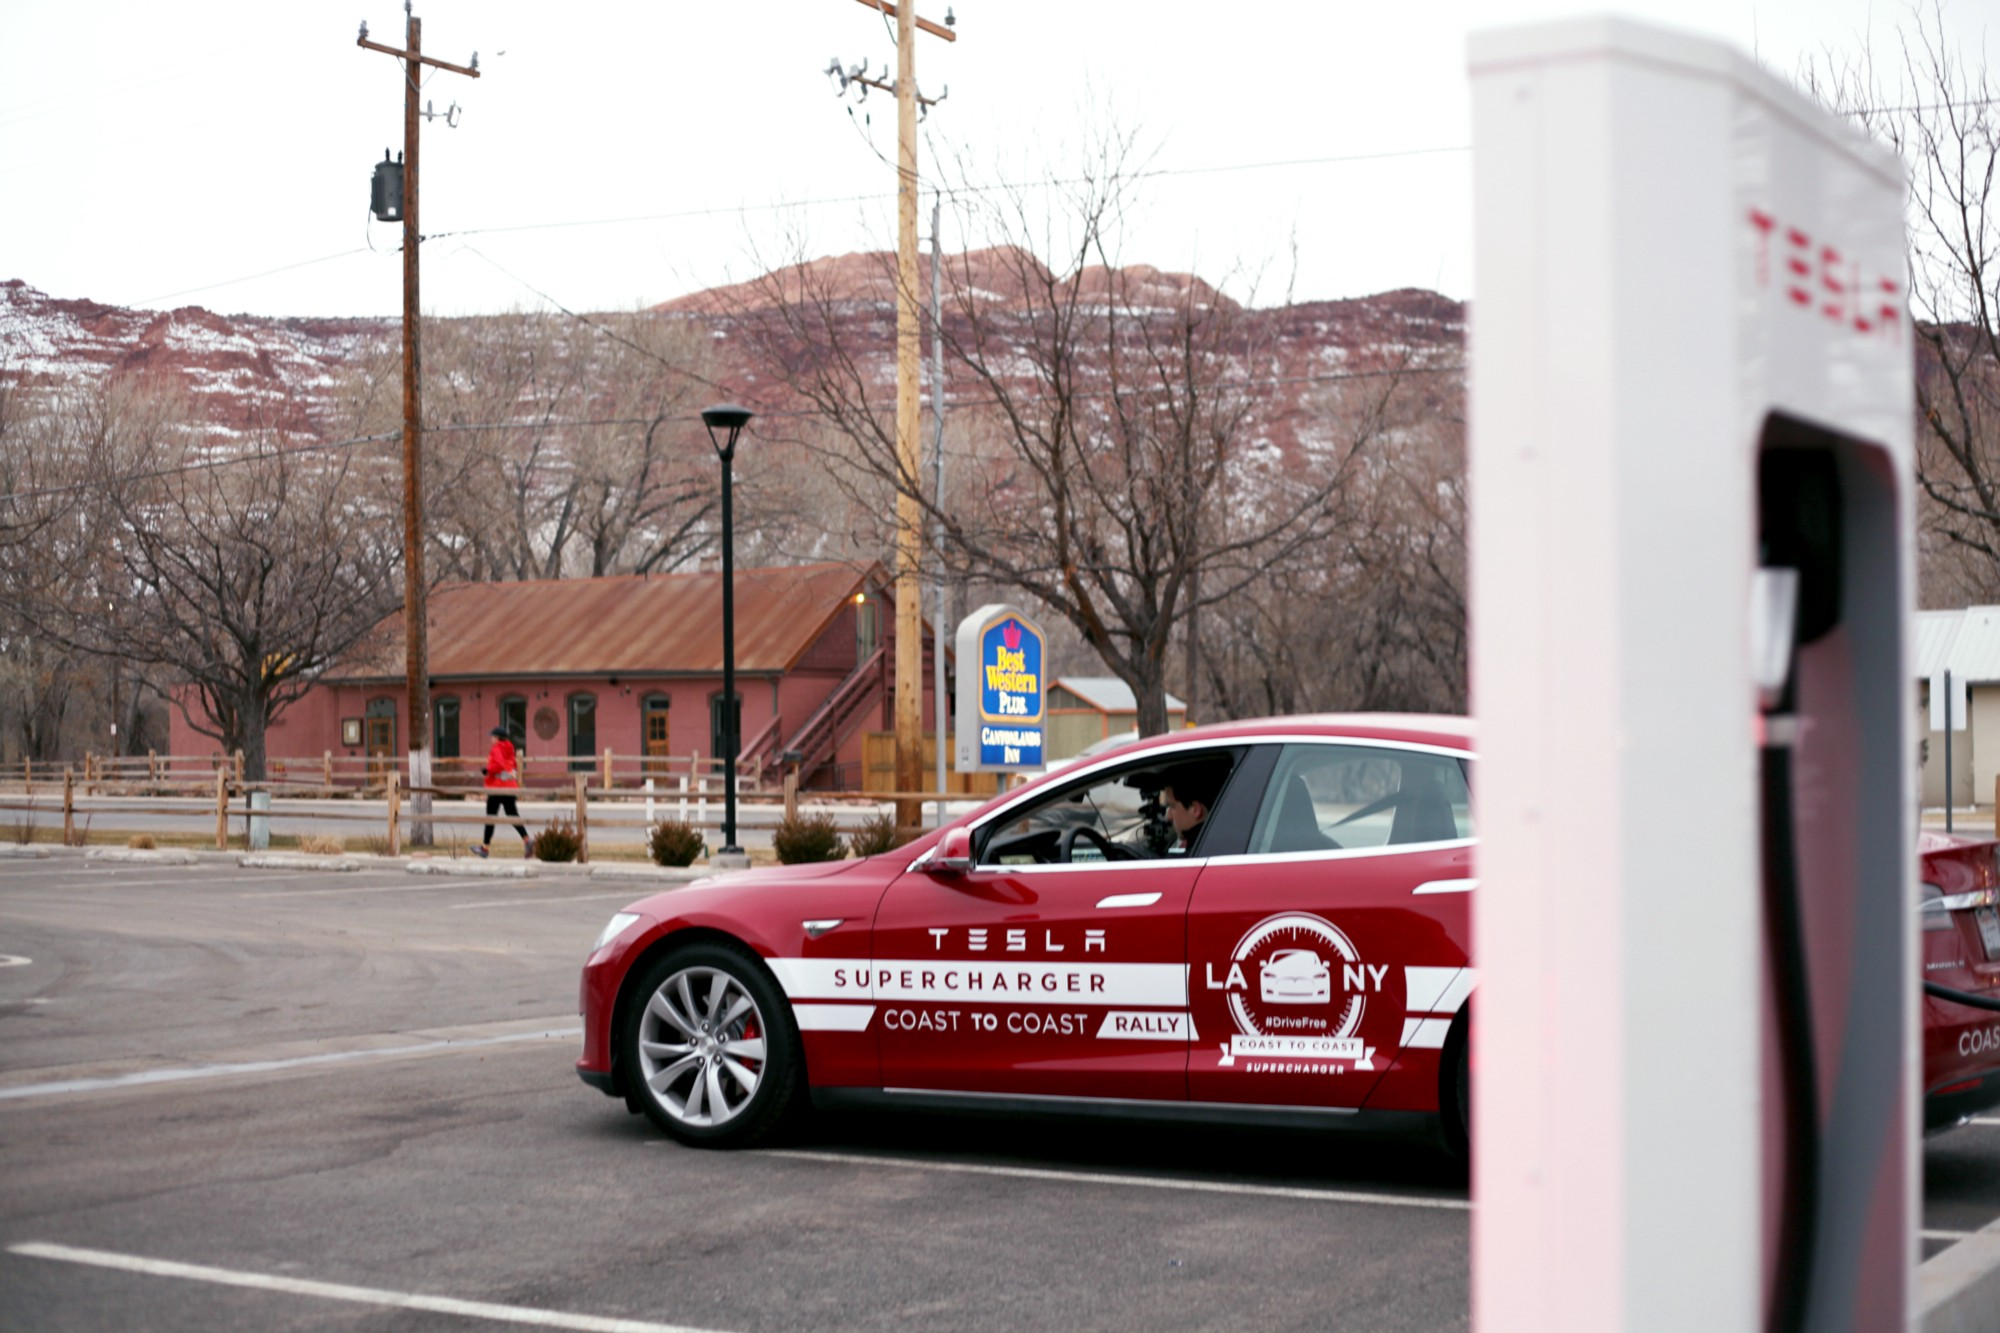 Tesla S Cross Country Rally Supercharger By Supercharger Medium